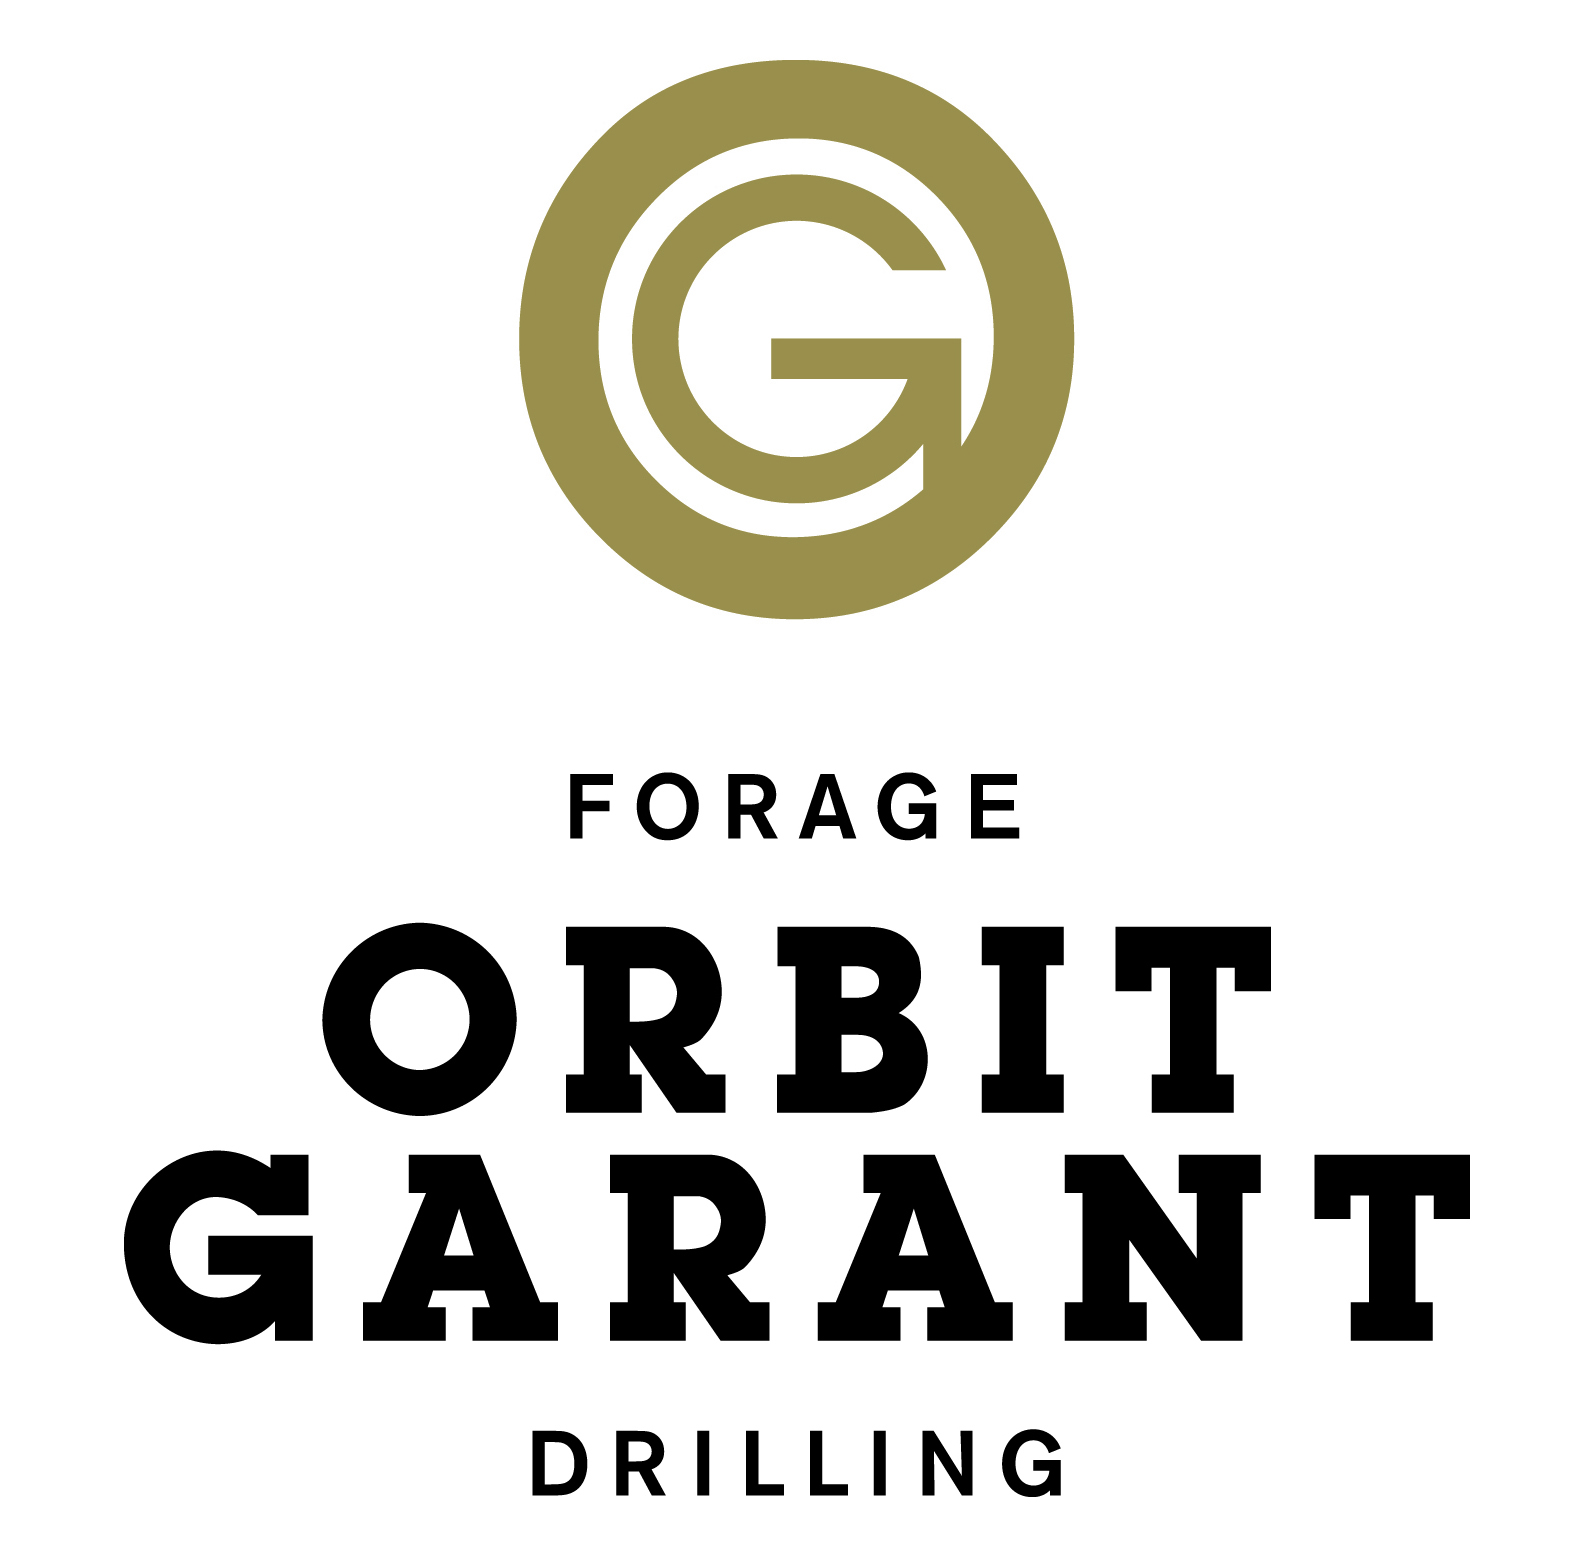 Forage Orbit Garant